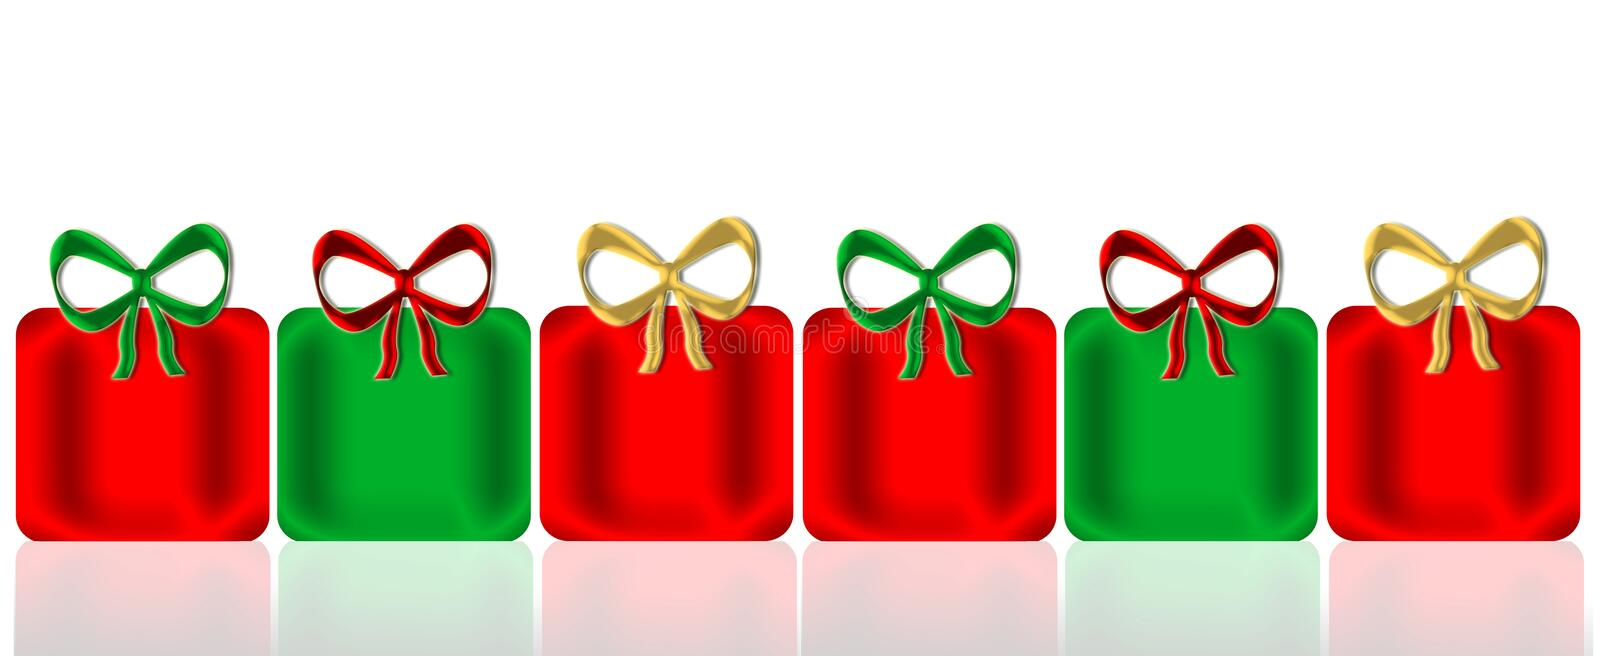 Christmas Presents. Six shining decorative presents and bows in Christmas colors of red, green, and gold with mirror reflection below for added depth and all on stock illustration